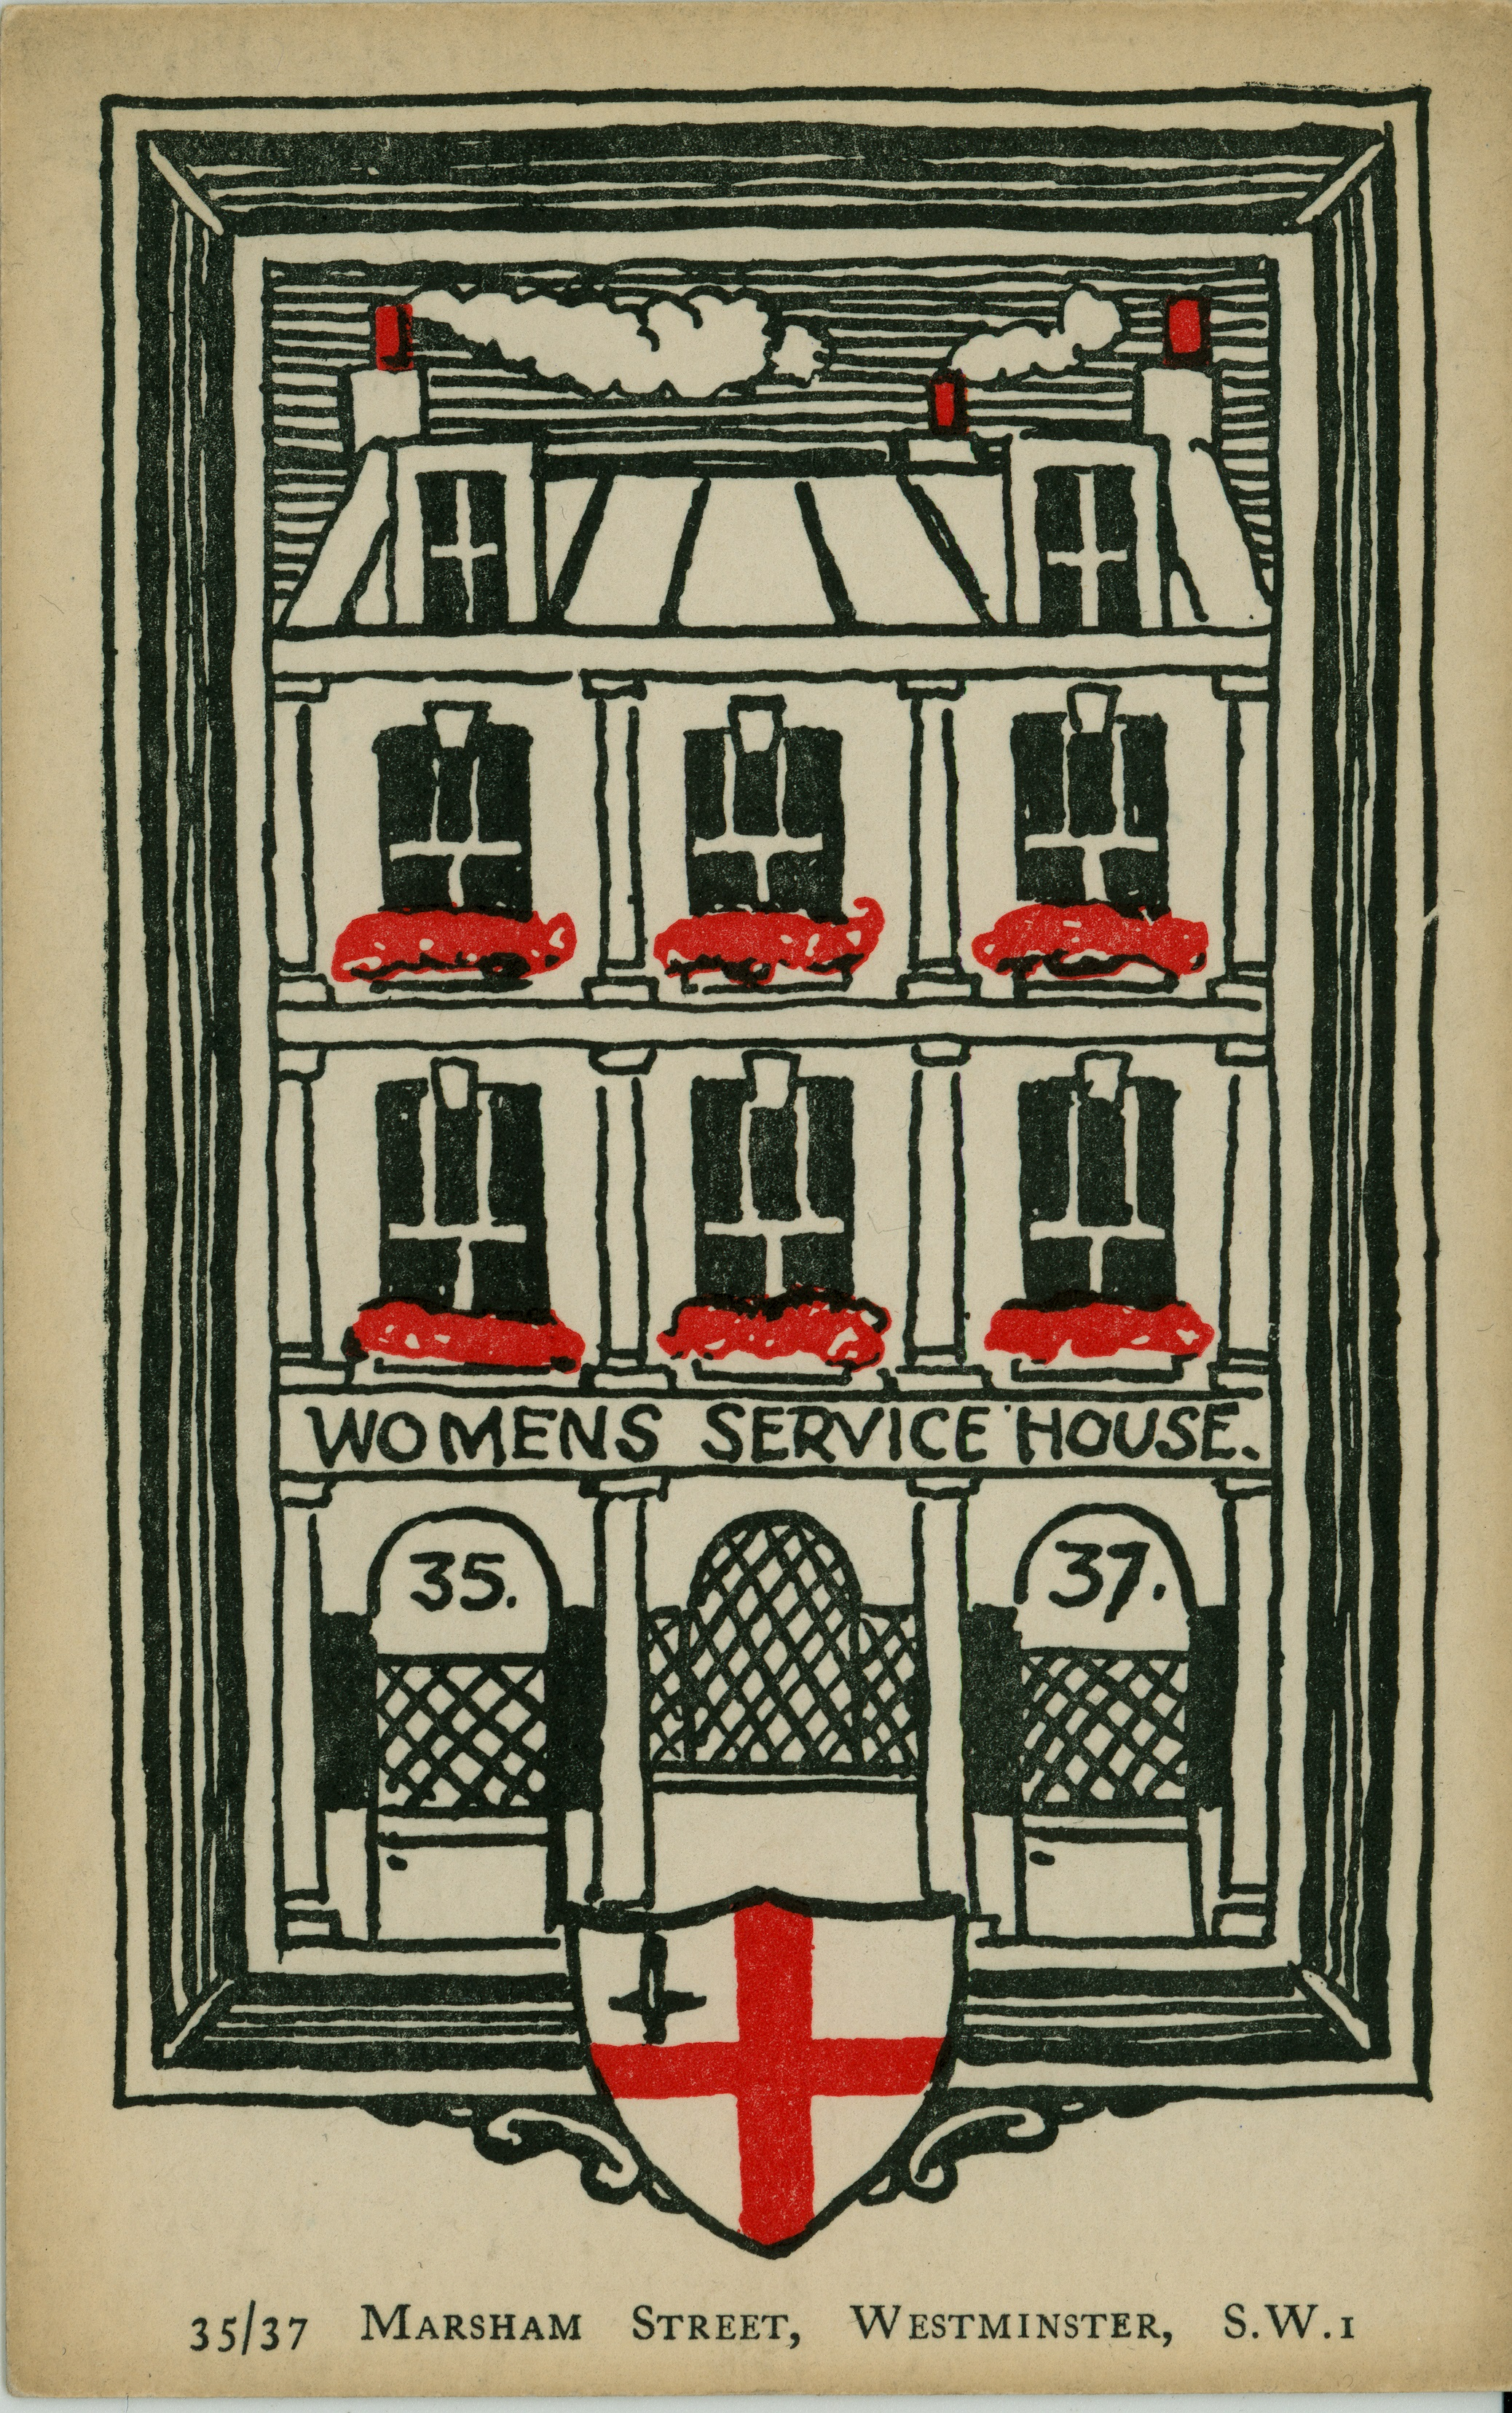 Women's Service House in Marsham Street, Westminster